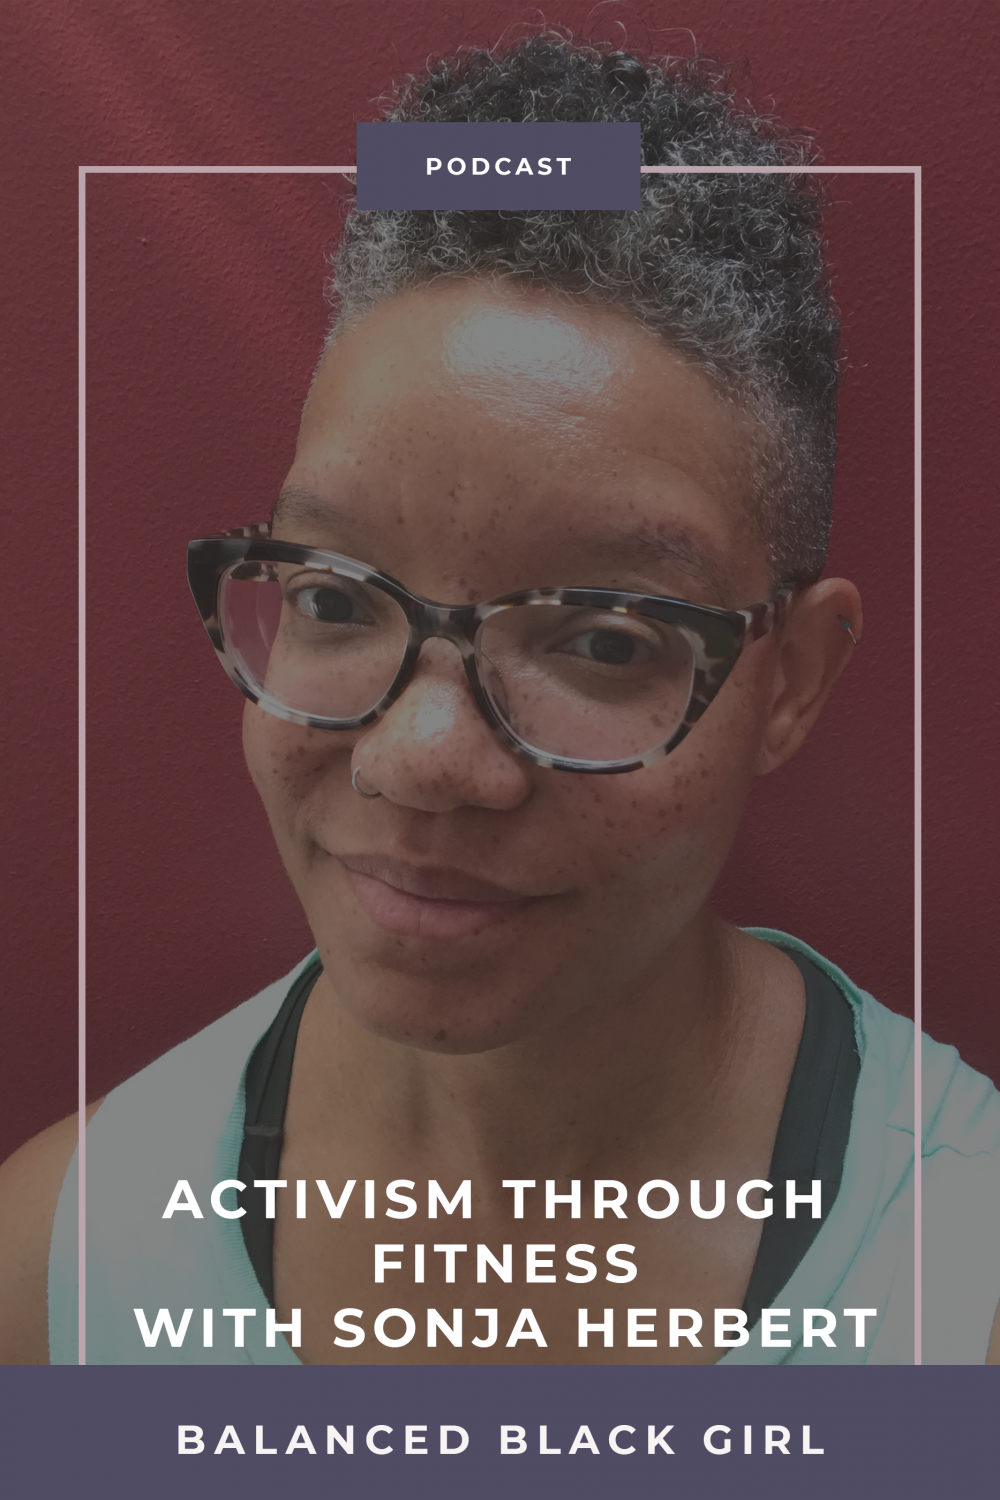 Episode 21: Activism Through Fitness with Sonja Herbert